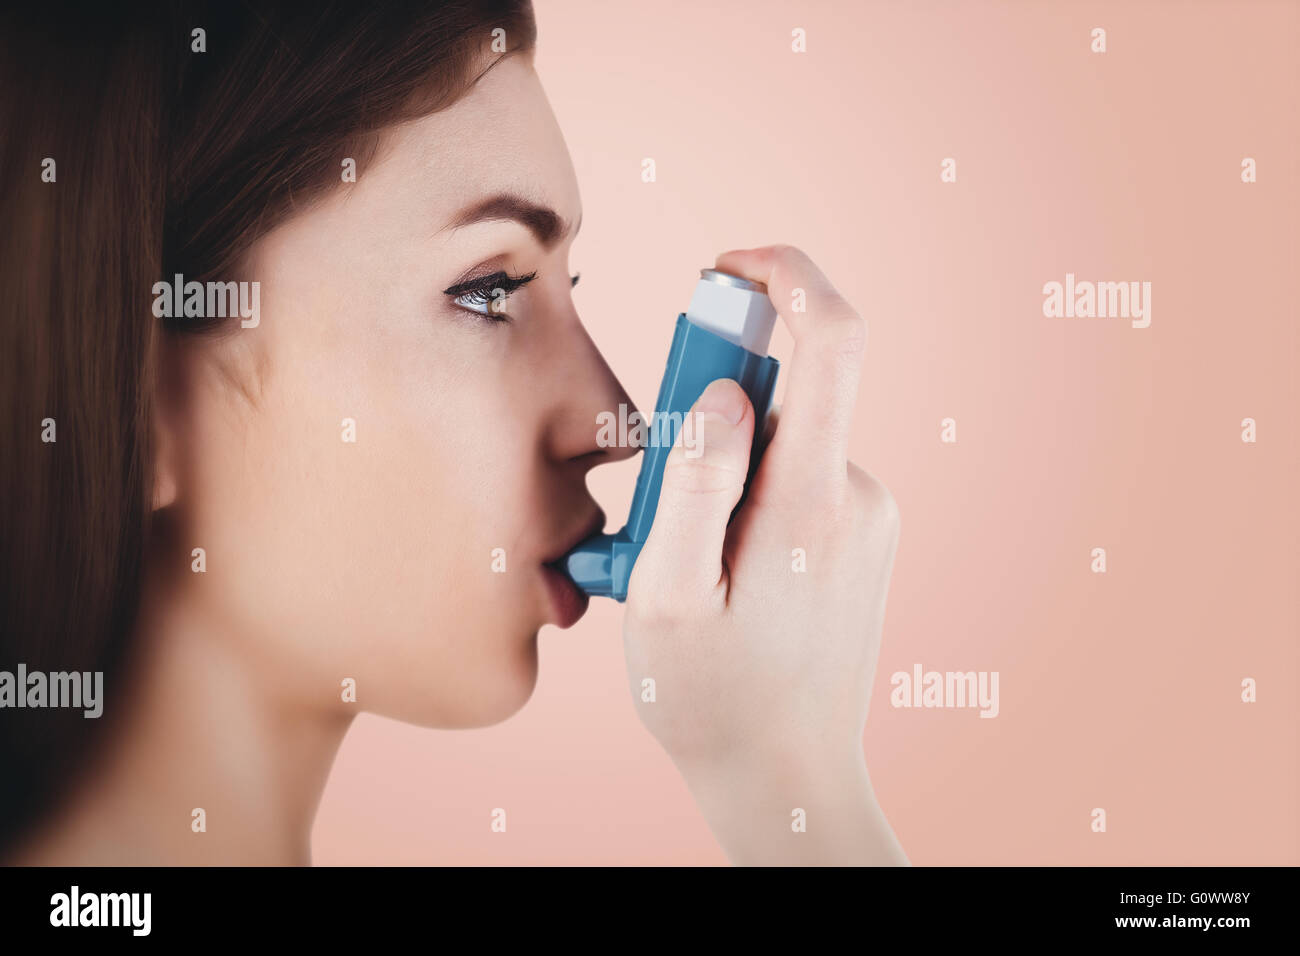 Composite image of portrait of an asthmatic woman - Stock Image